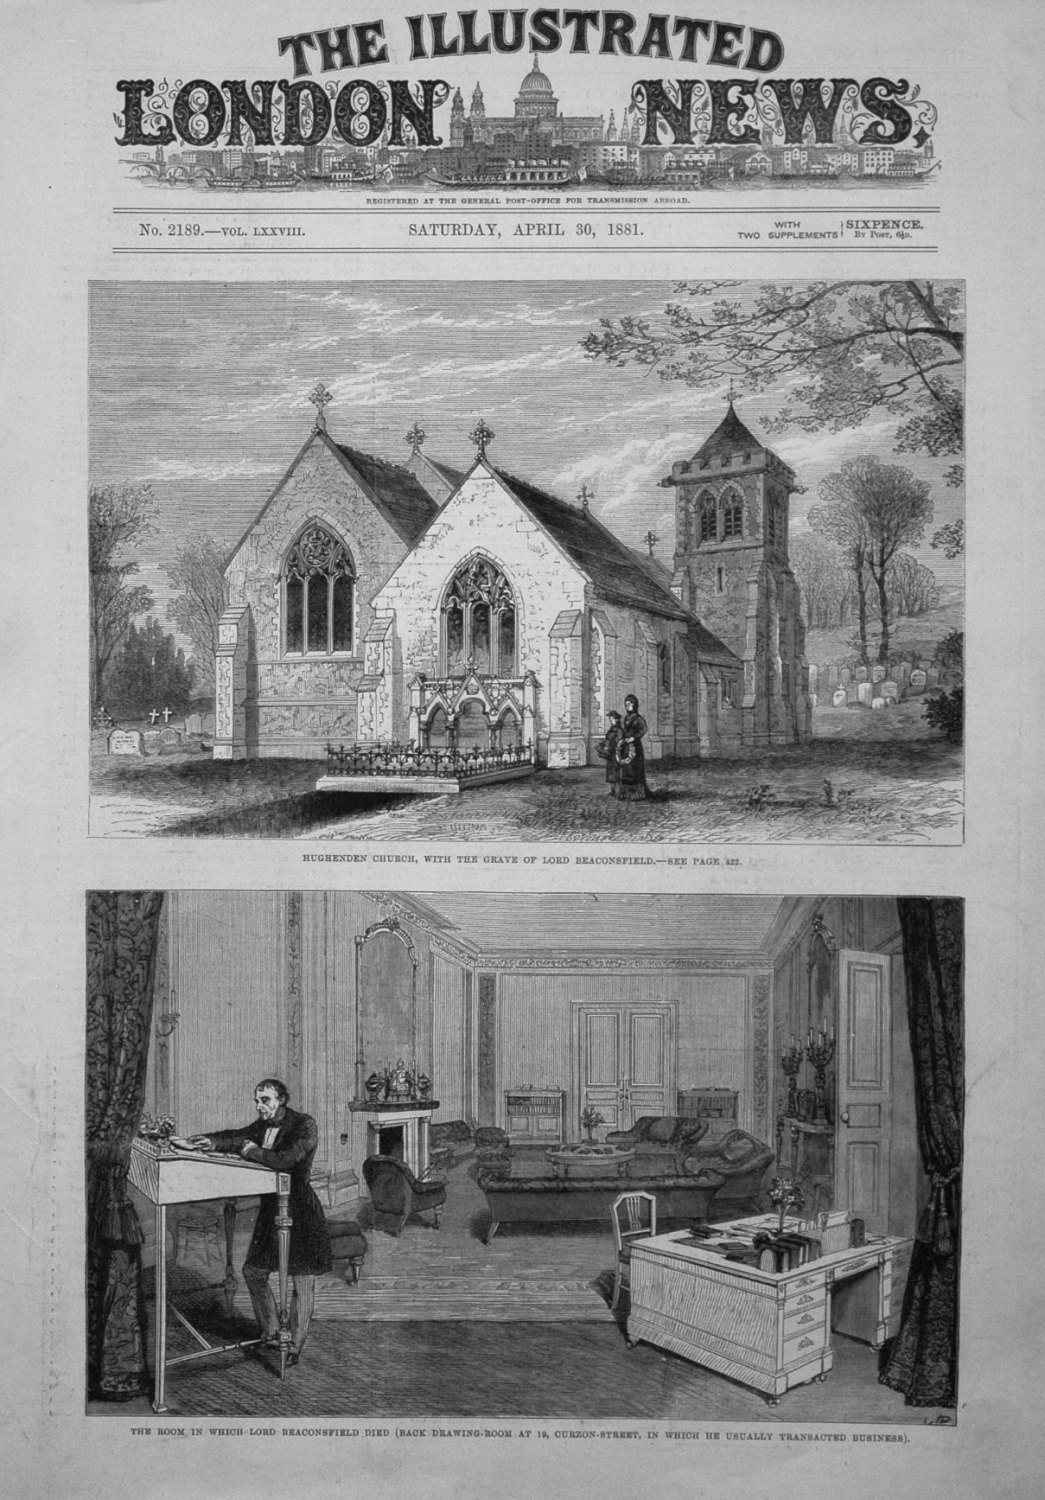 Hughenden Church, with the Grave of Lord Beaconsfield. 1881